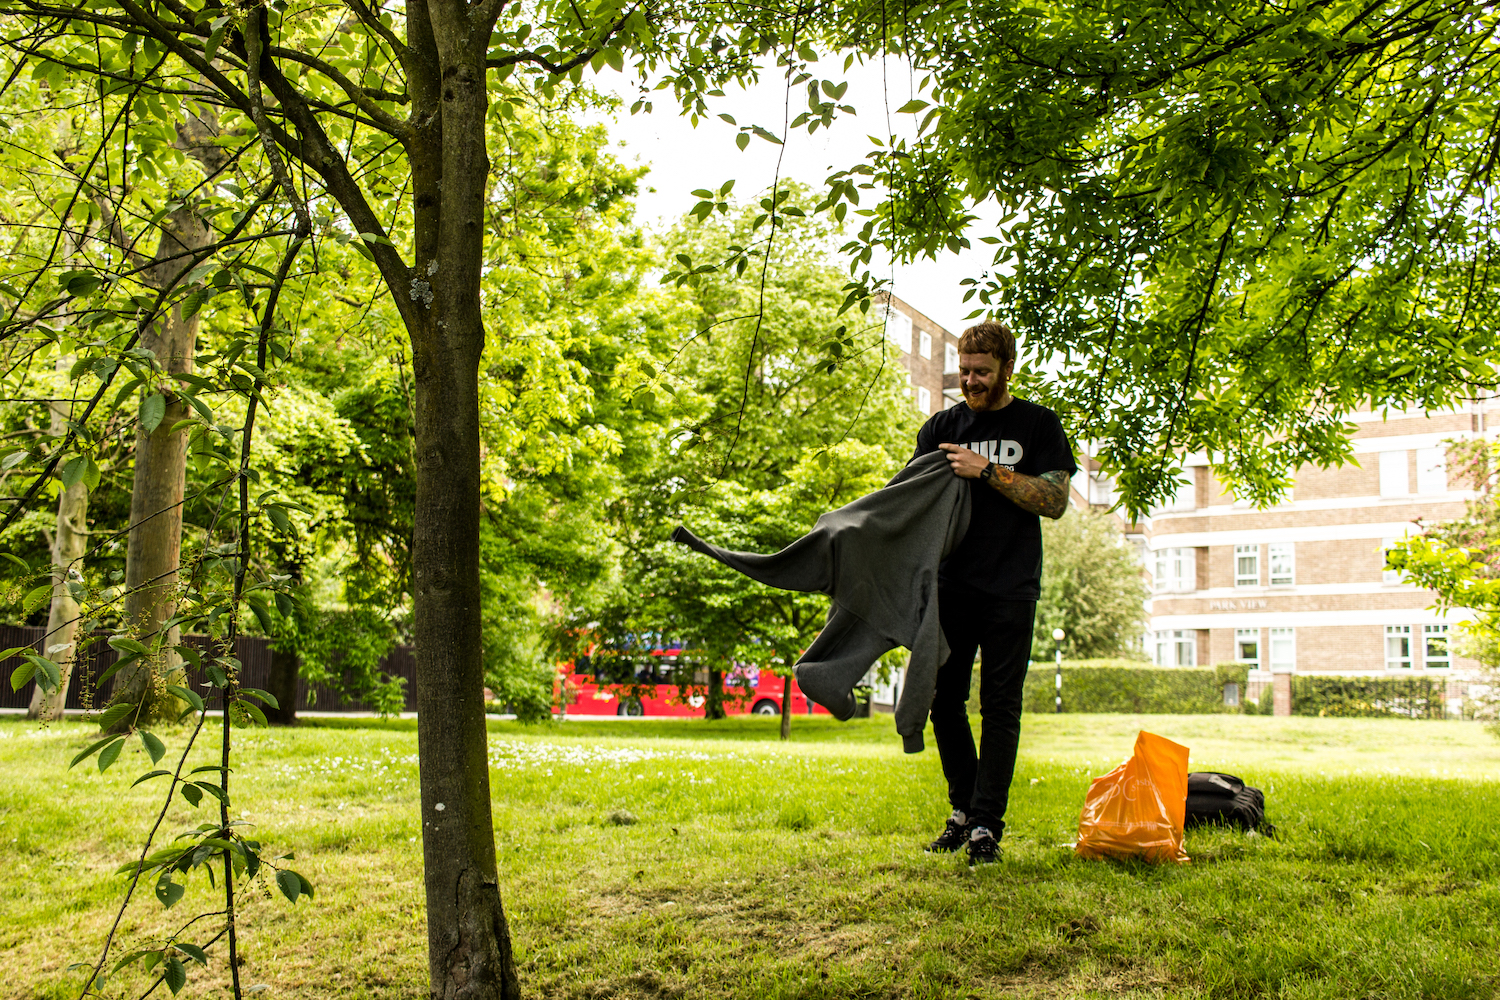 Professional Photography White Man With Beard Black T-Shirt And Black Jeans Holding Grey Hoody With Green Grass Trees And Buildings In Background In Little Venice Paddington London